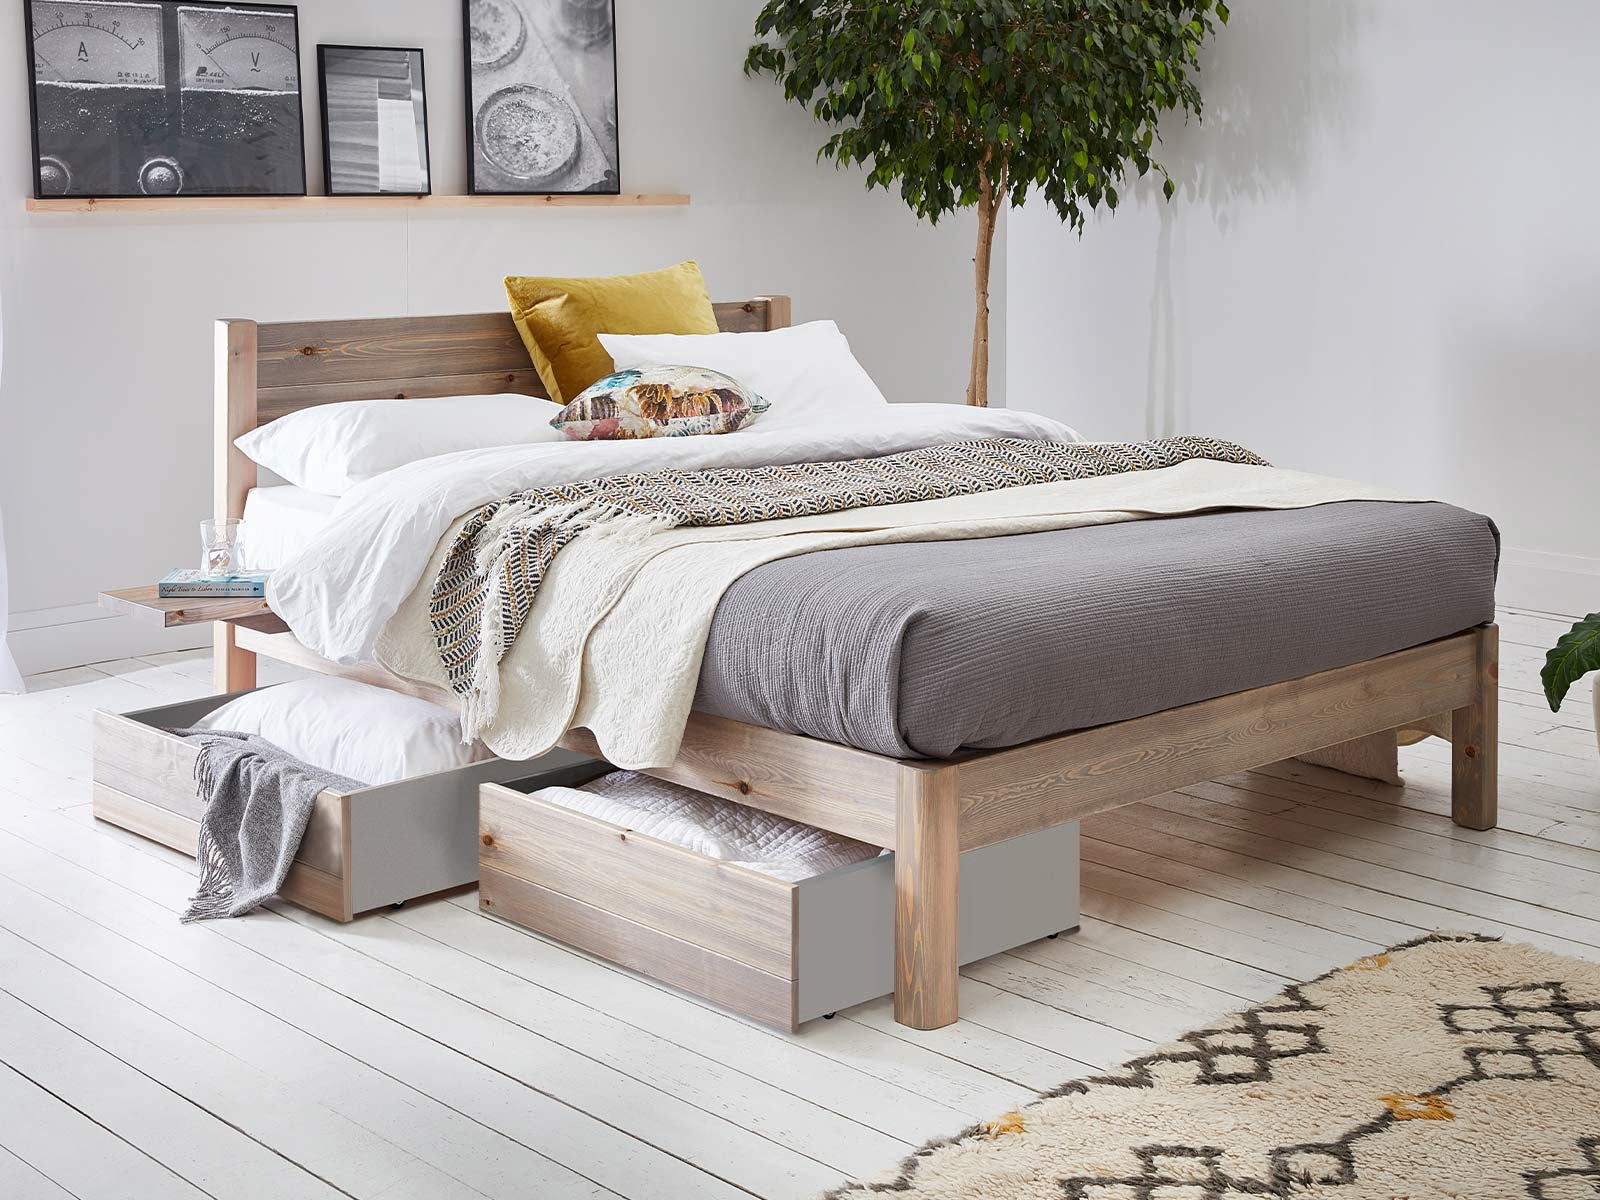 Picture of: White Knight Bed Space Saver Get Laid Beds